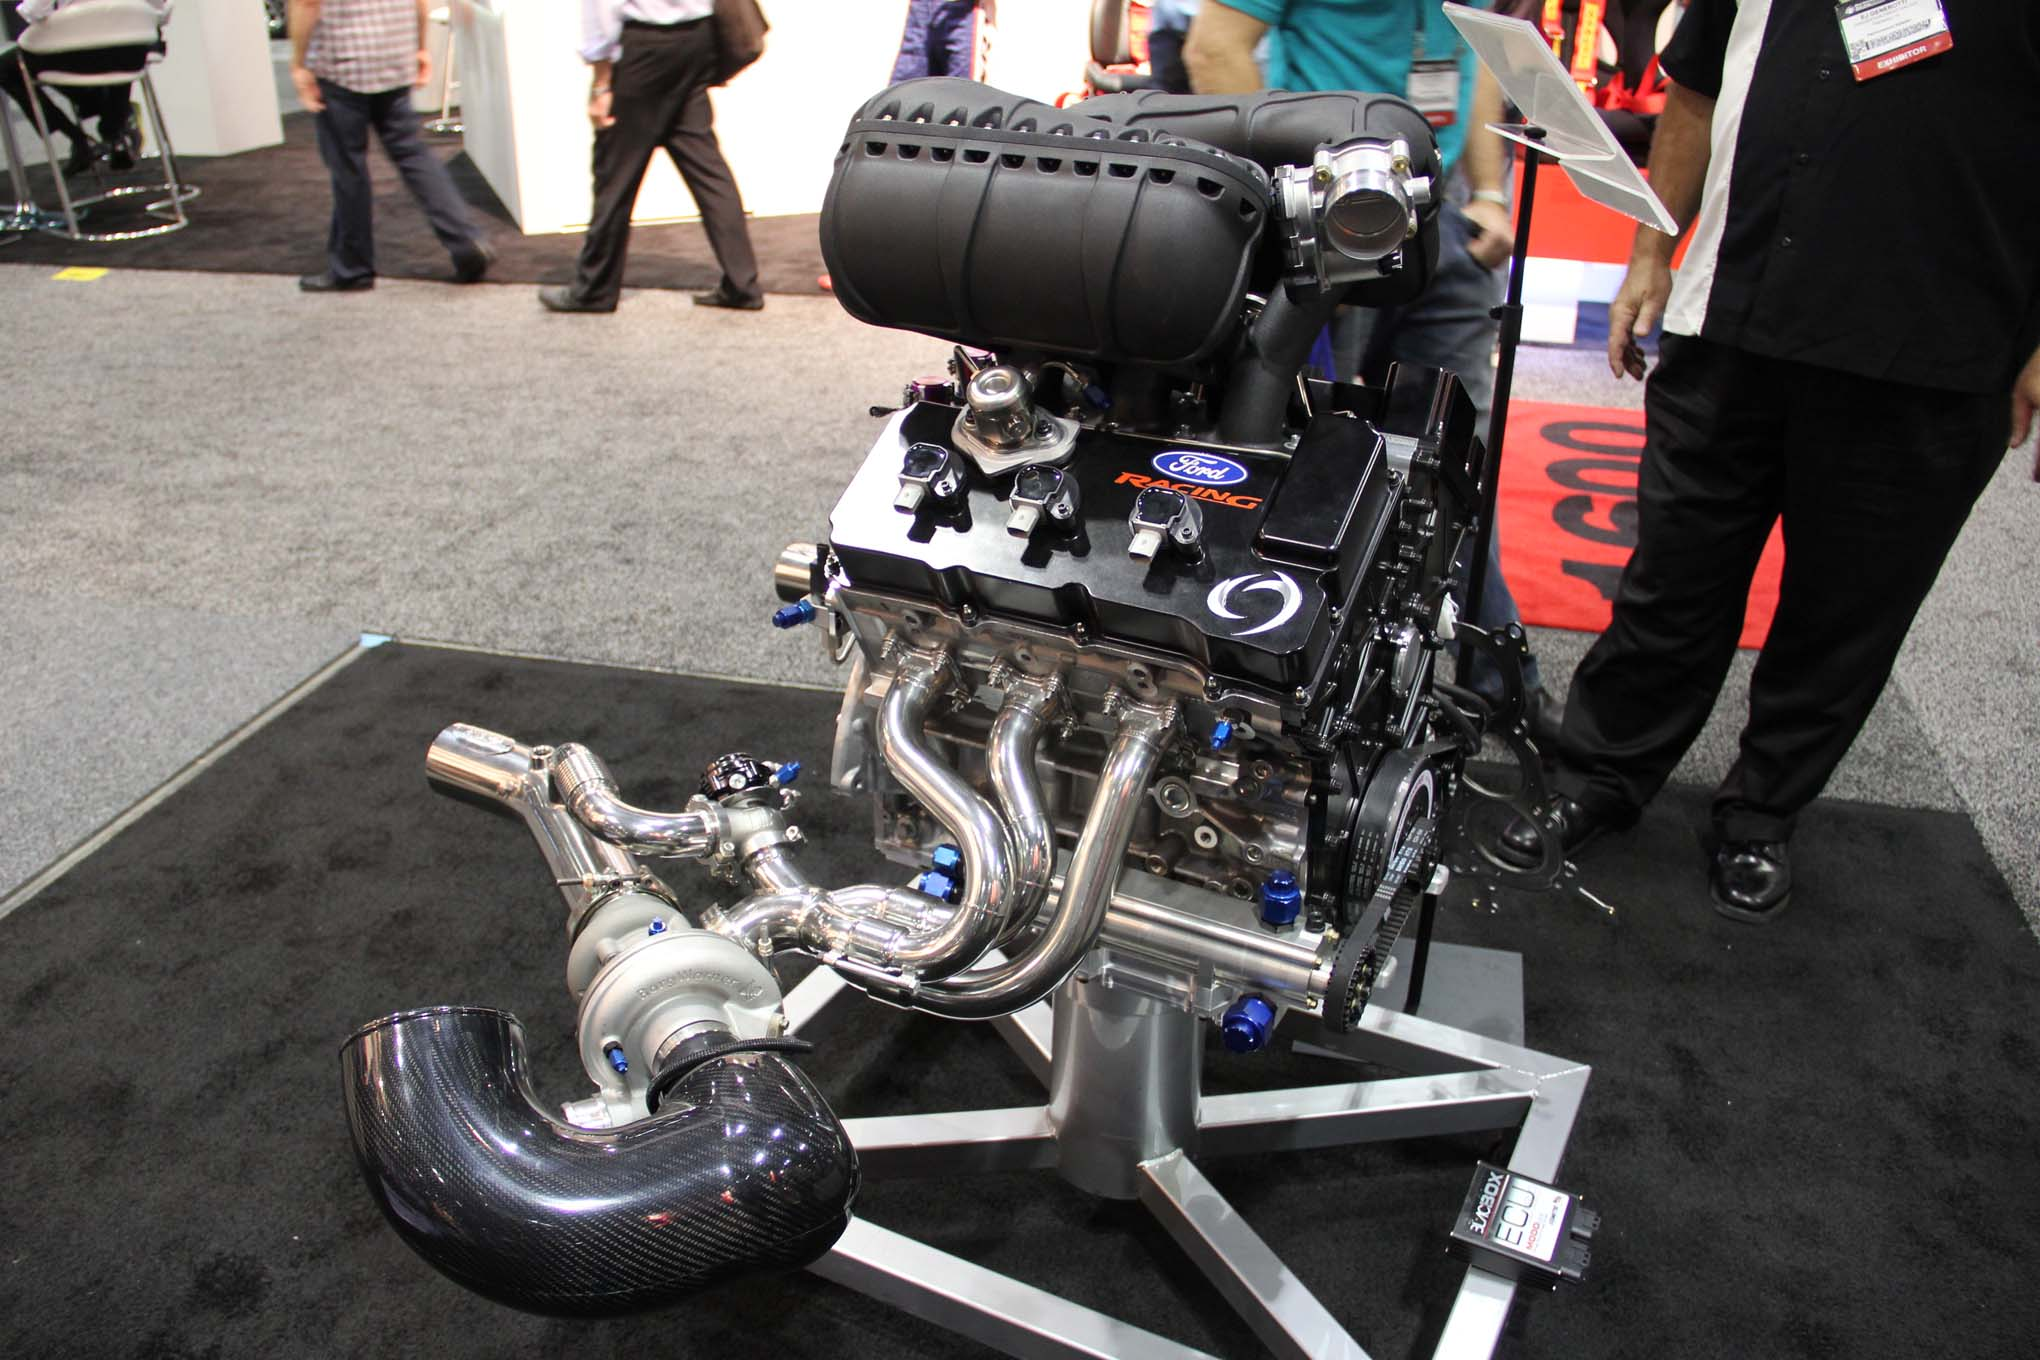 Ford Ecoboost 3 5L Twin-Turbo V6 is Capable of 800+hp